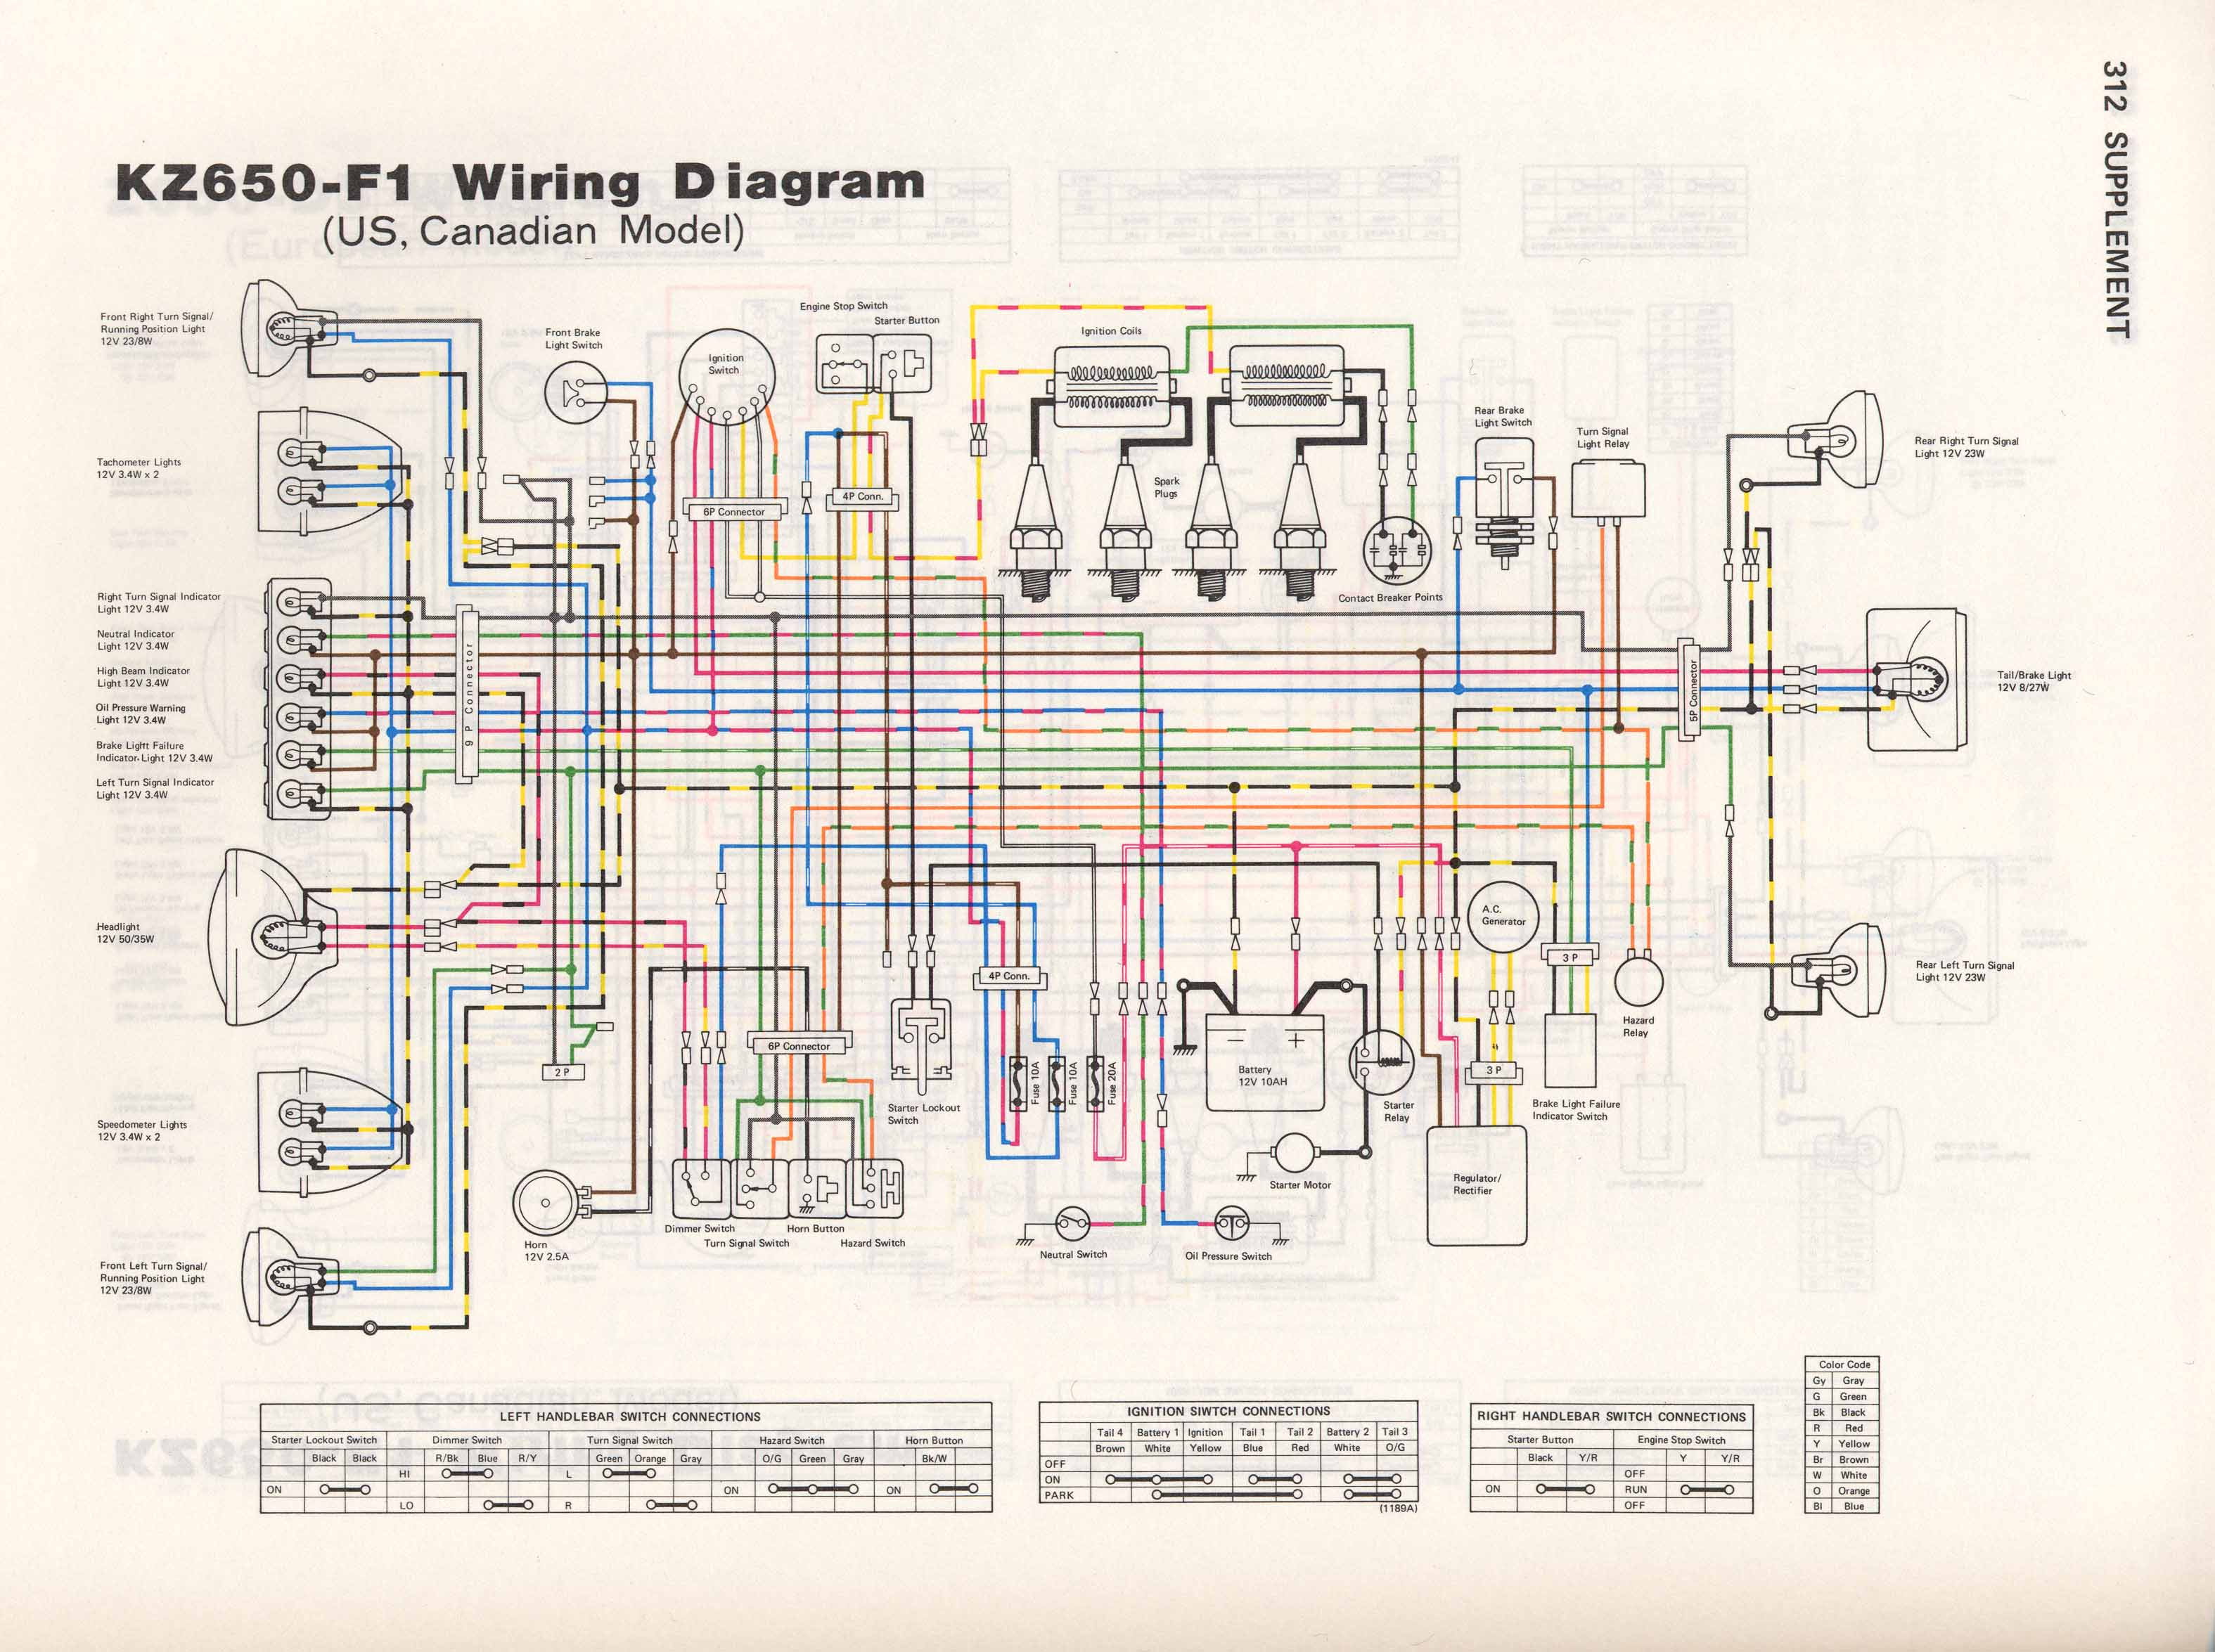 1977 Kawasaki Kz650 Wiring Diagram Modern Design Of Vn800 Schematics Info Diagrams Rh F7 Ke100